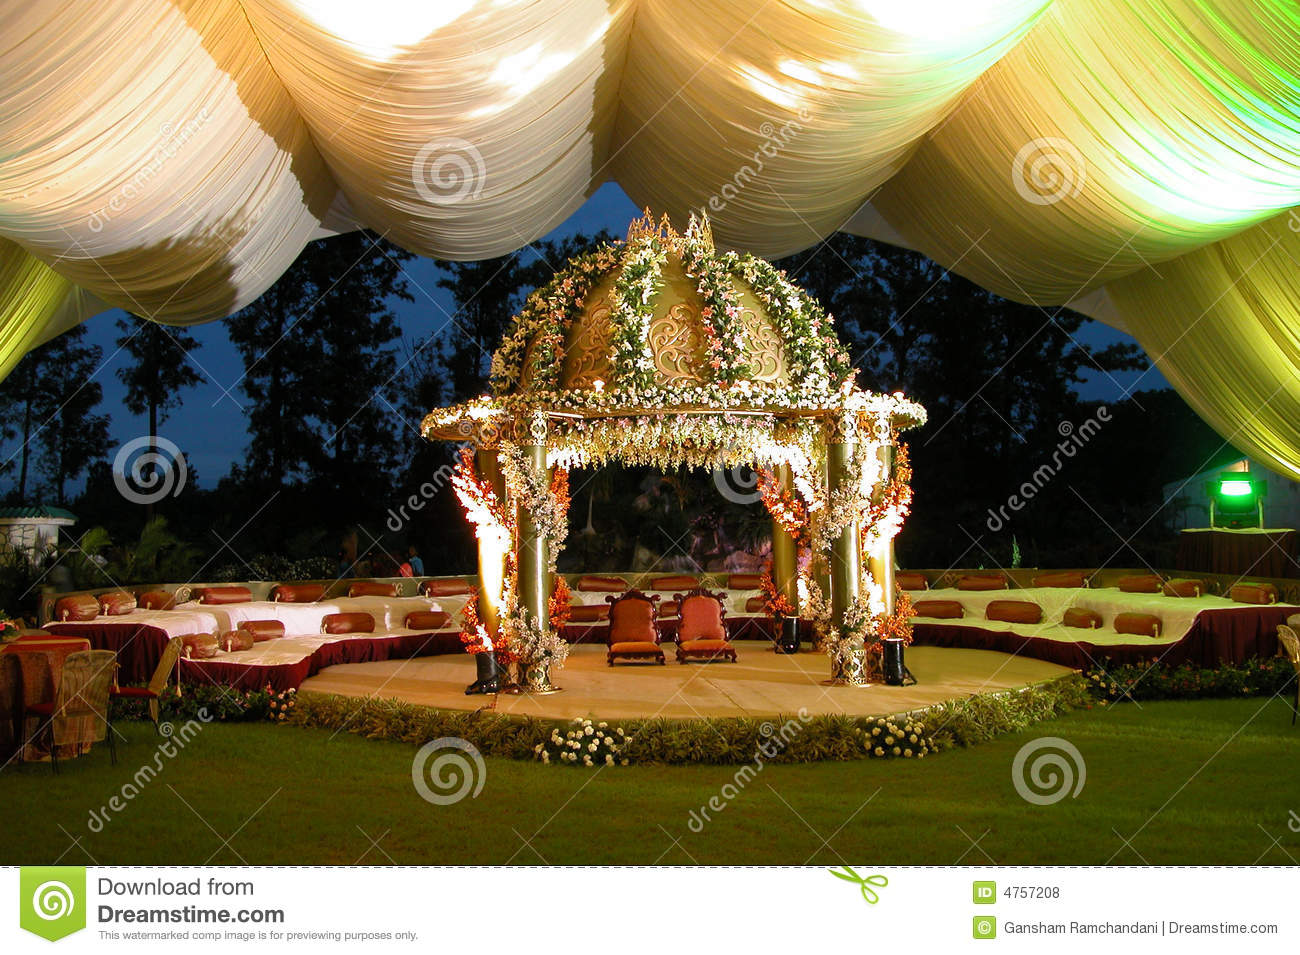 Indian Hindu wedding stage for weddings & other celebrations